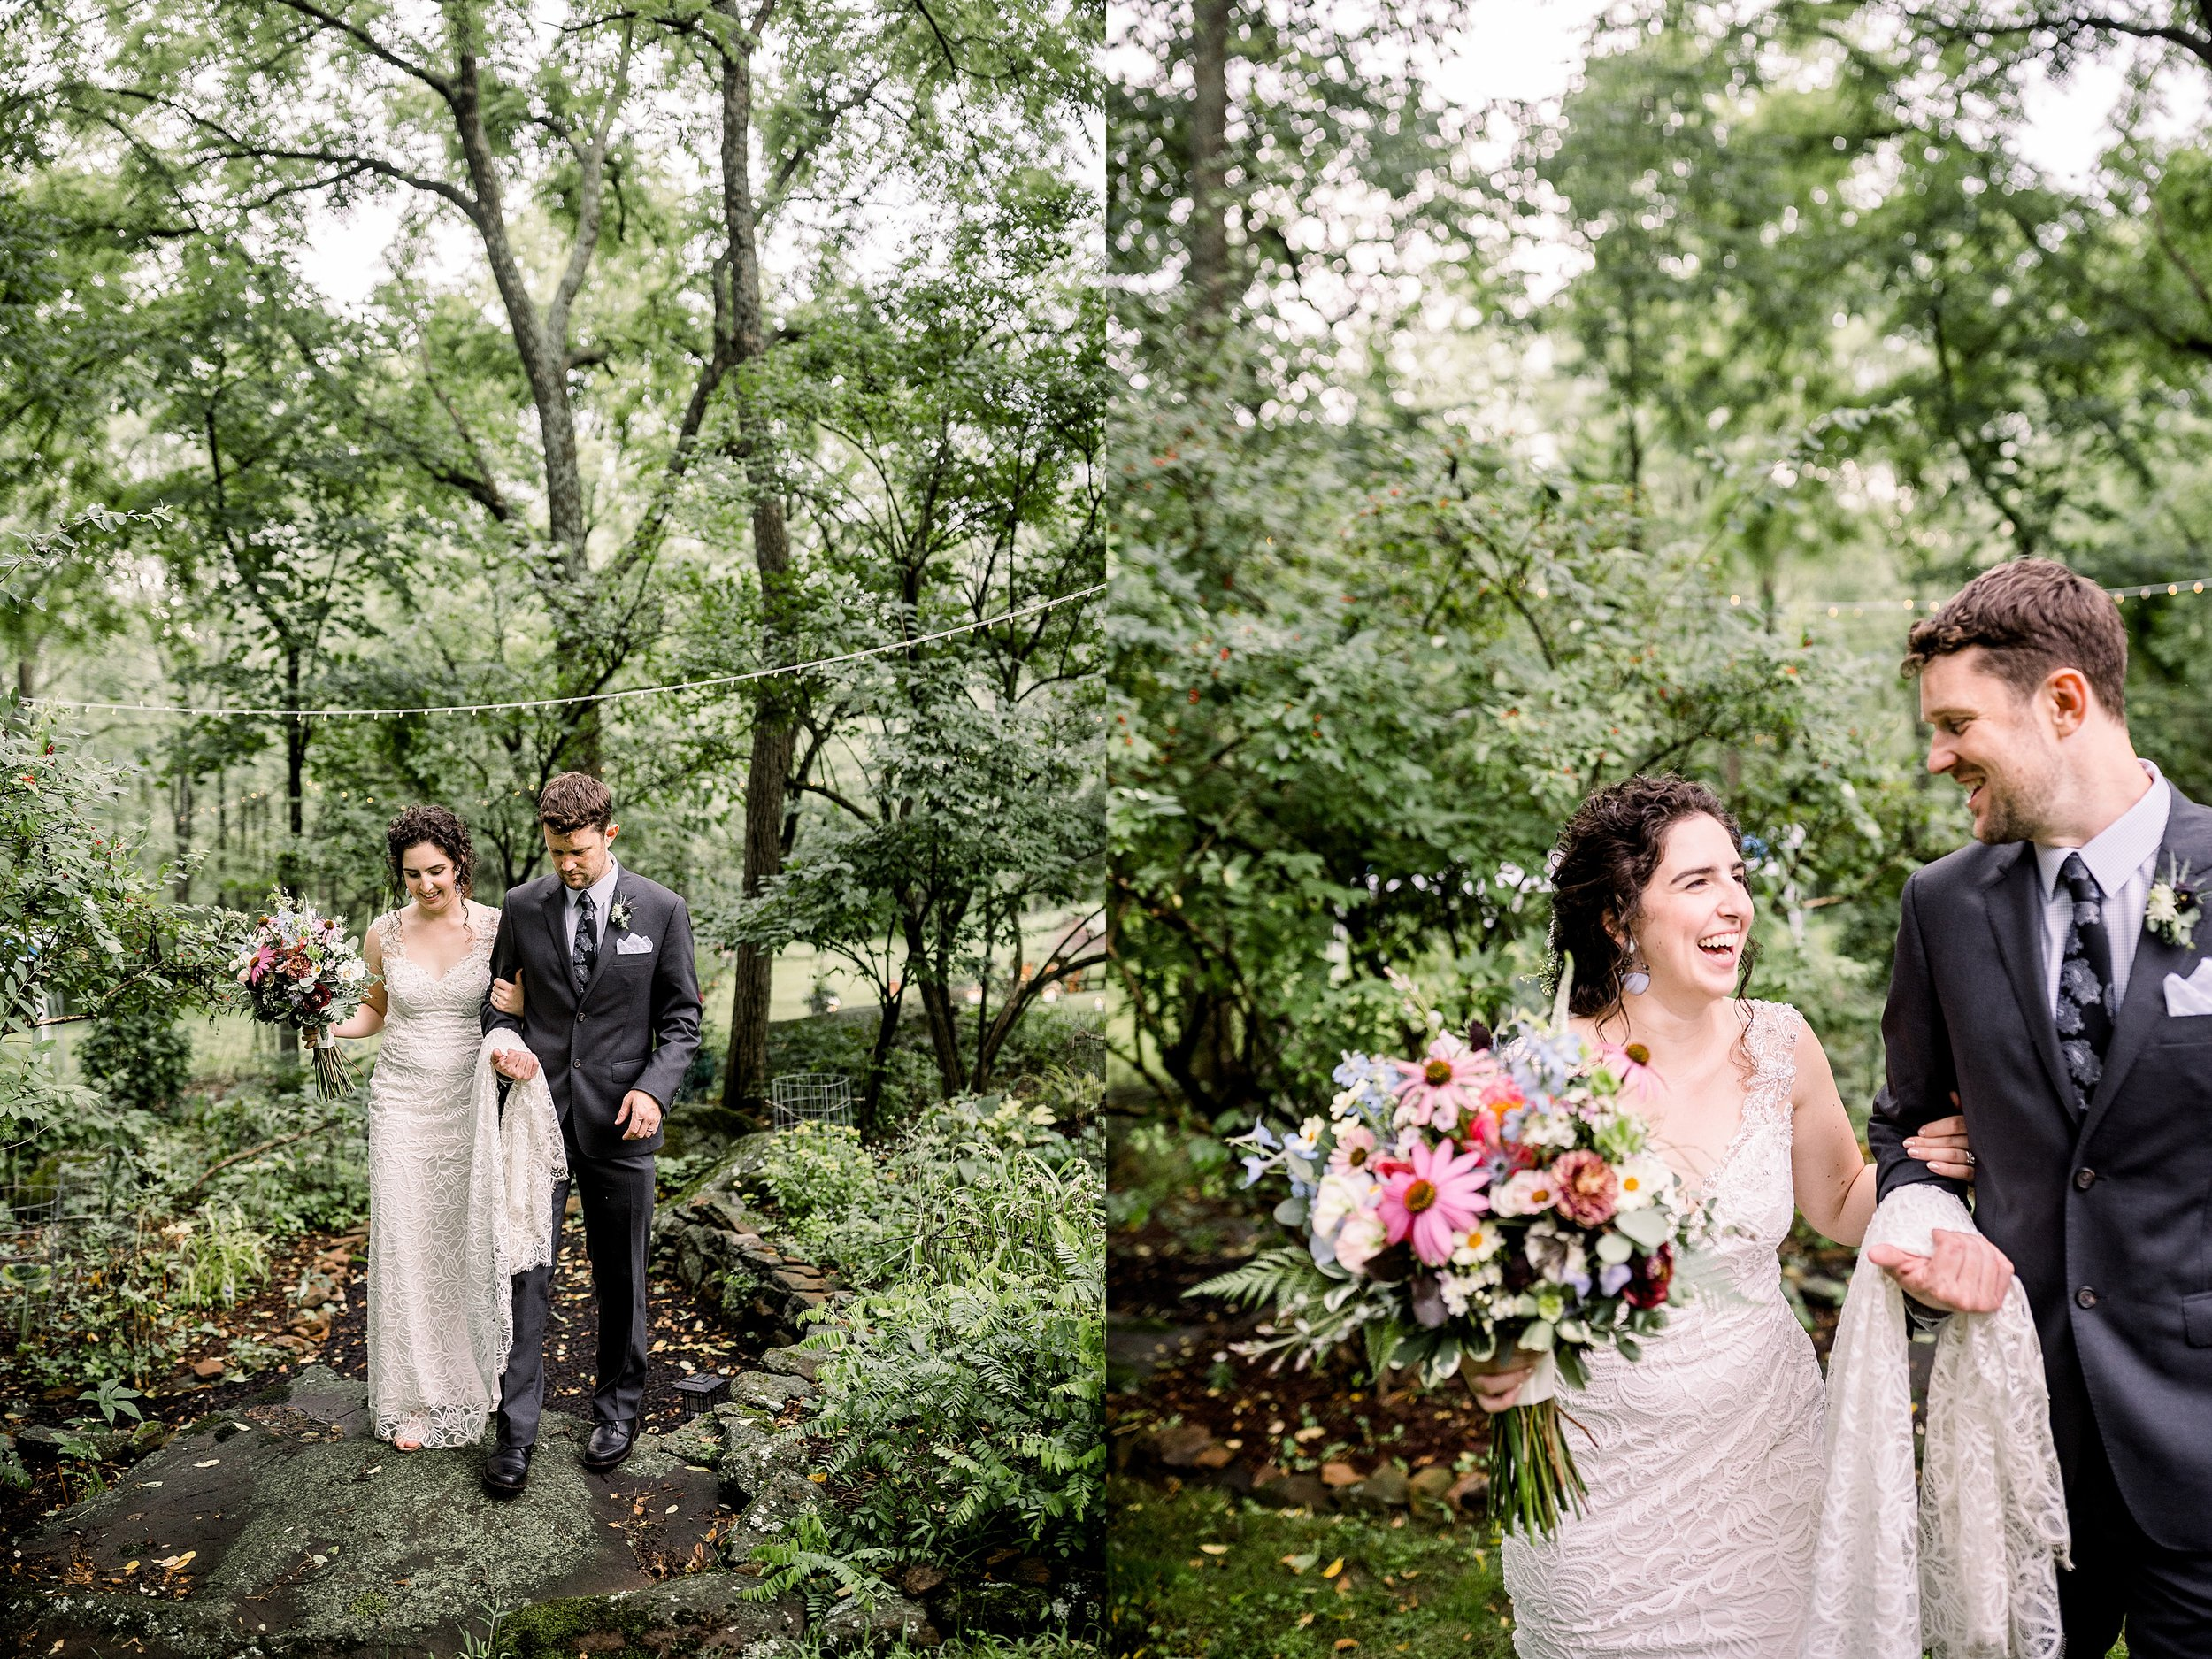 Bucks-County-Wedding-Photographer_0011.jpg